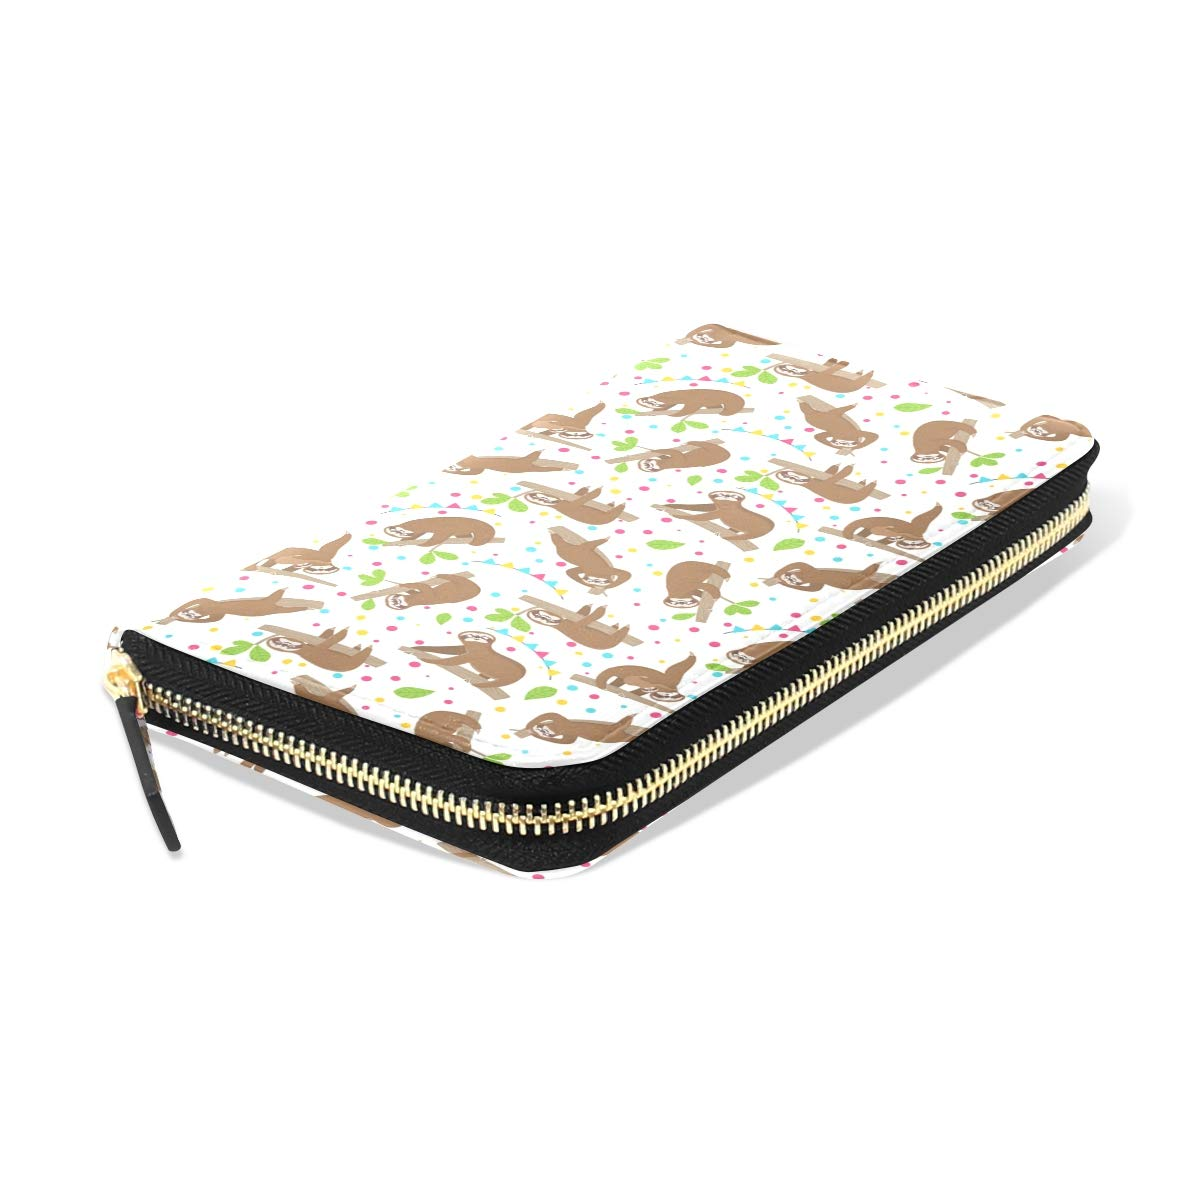 Women Relaxing Sloths On Jungle Leather Wallet Large Capacity Zipper Travel Wristlet Bags Clutch Cellphone Bag